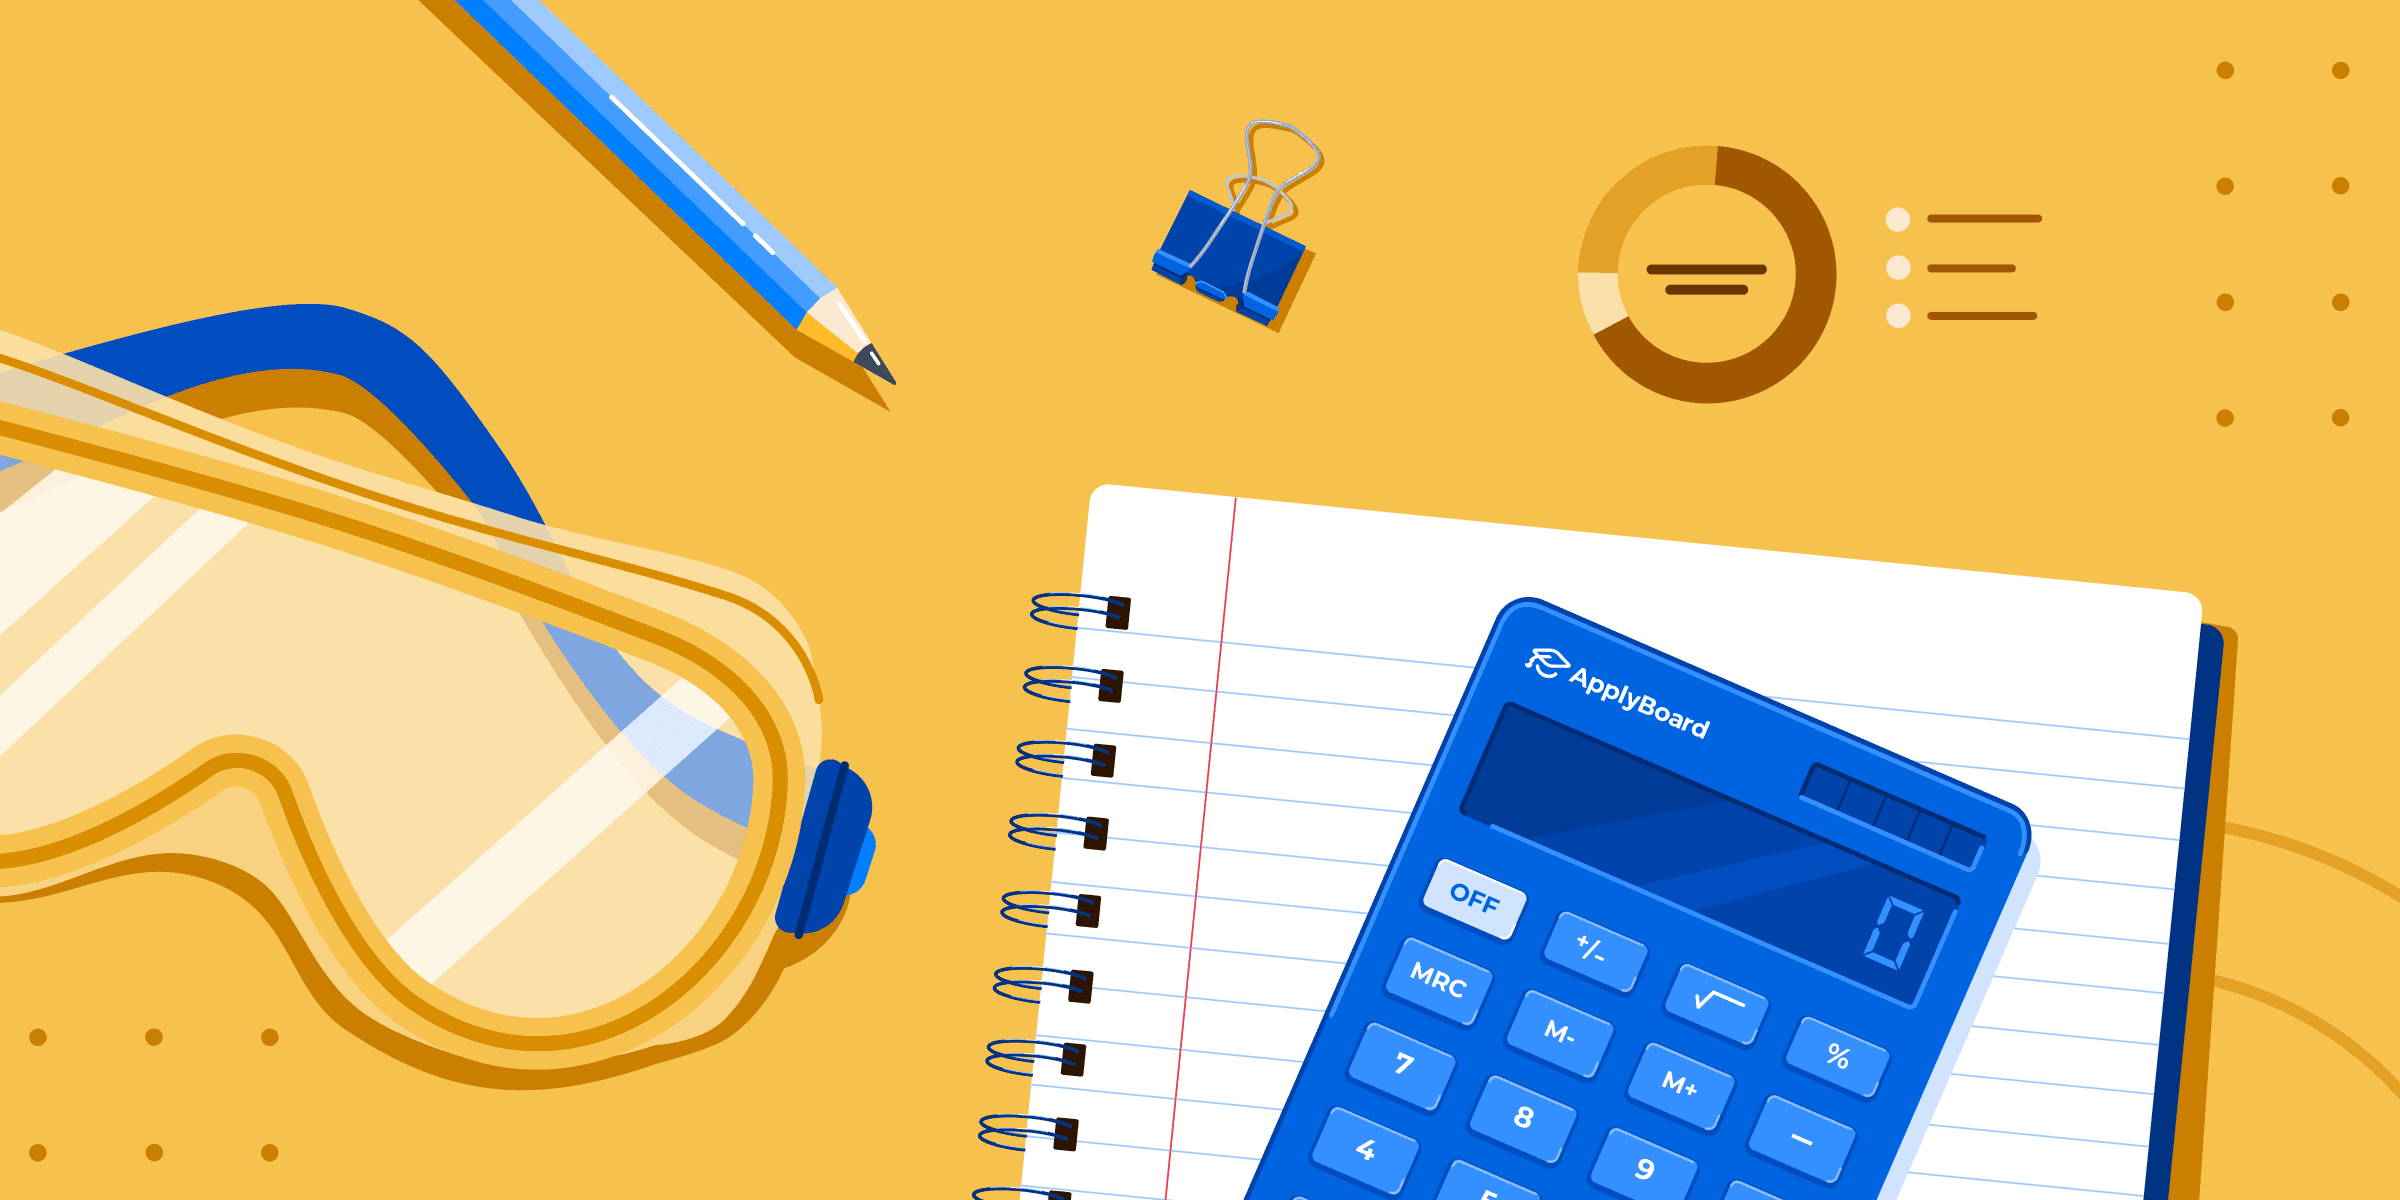 A notebook, a calculator, some goggles, and other school supplies.